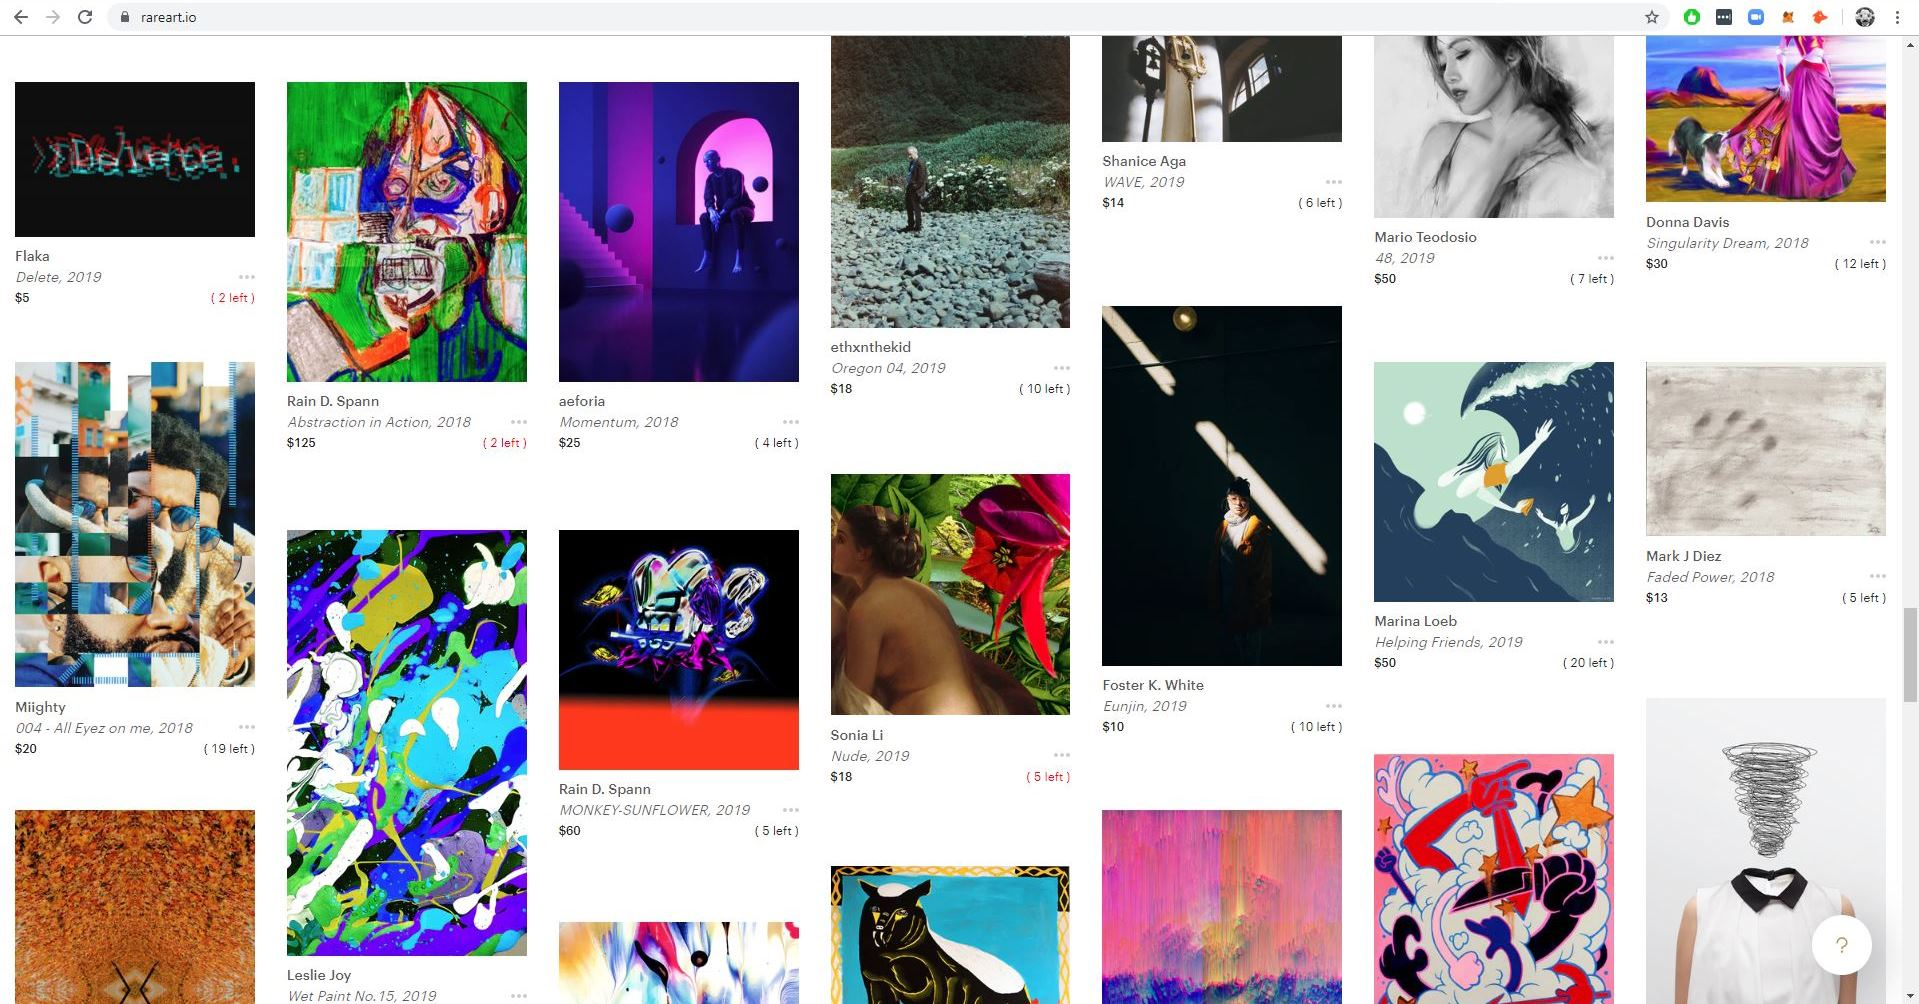 RAREart.io, a marketplace for limited-edition digital art authenticated on the Ethereum blockchain